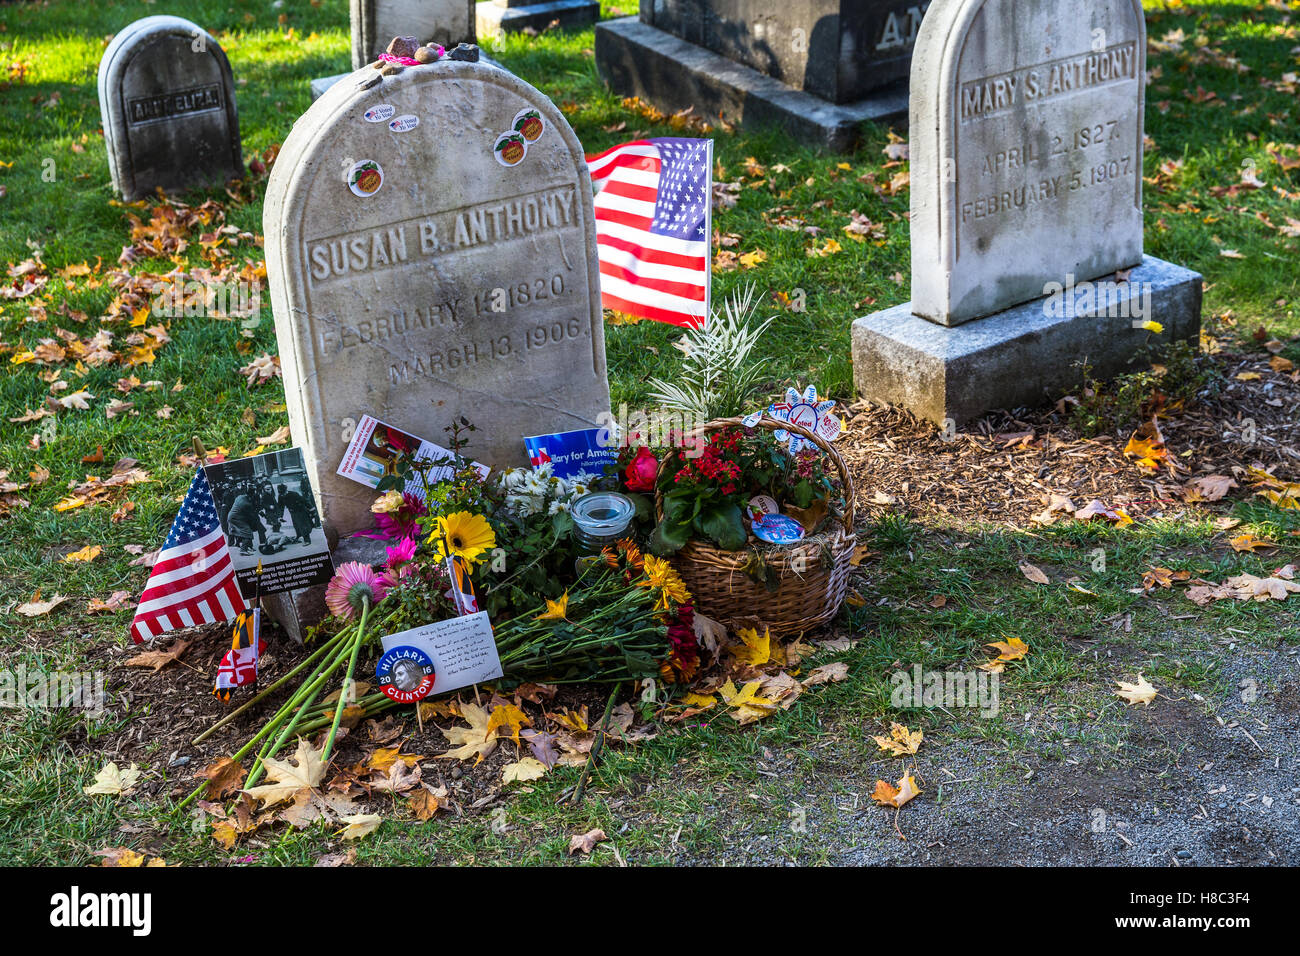 Susan B. Anthony women rights leader gravestone, 'I Voted' 2016 USA presidential election stickers, political - Stock Image